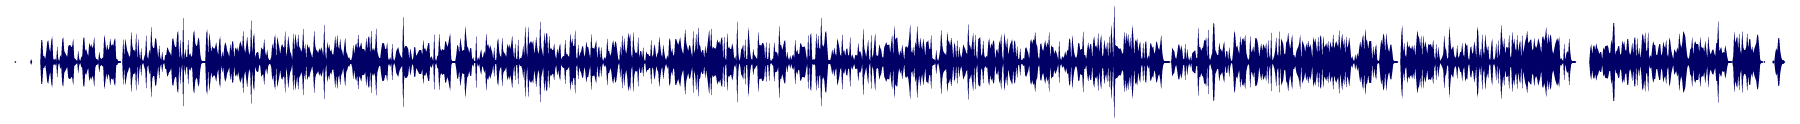 waveform of track #71594